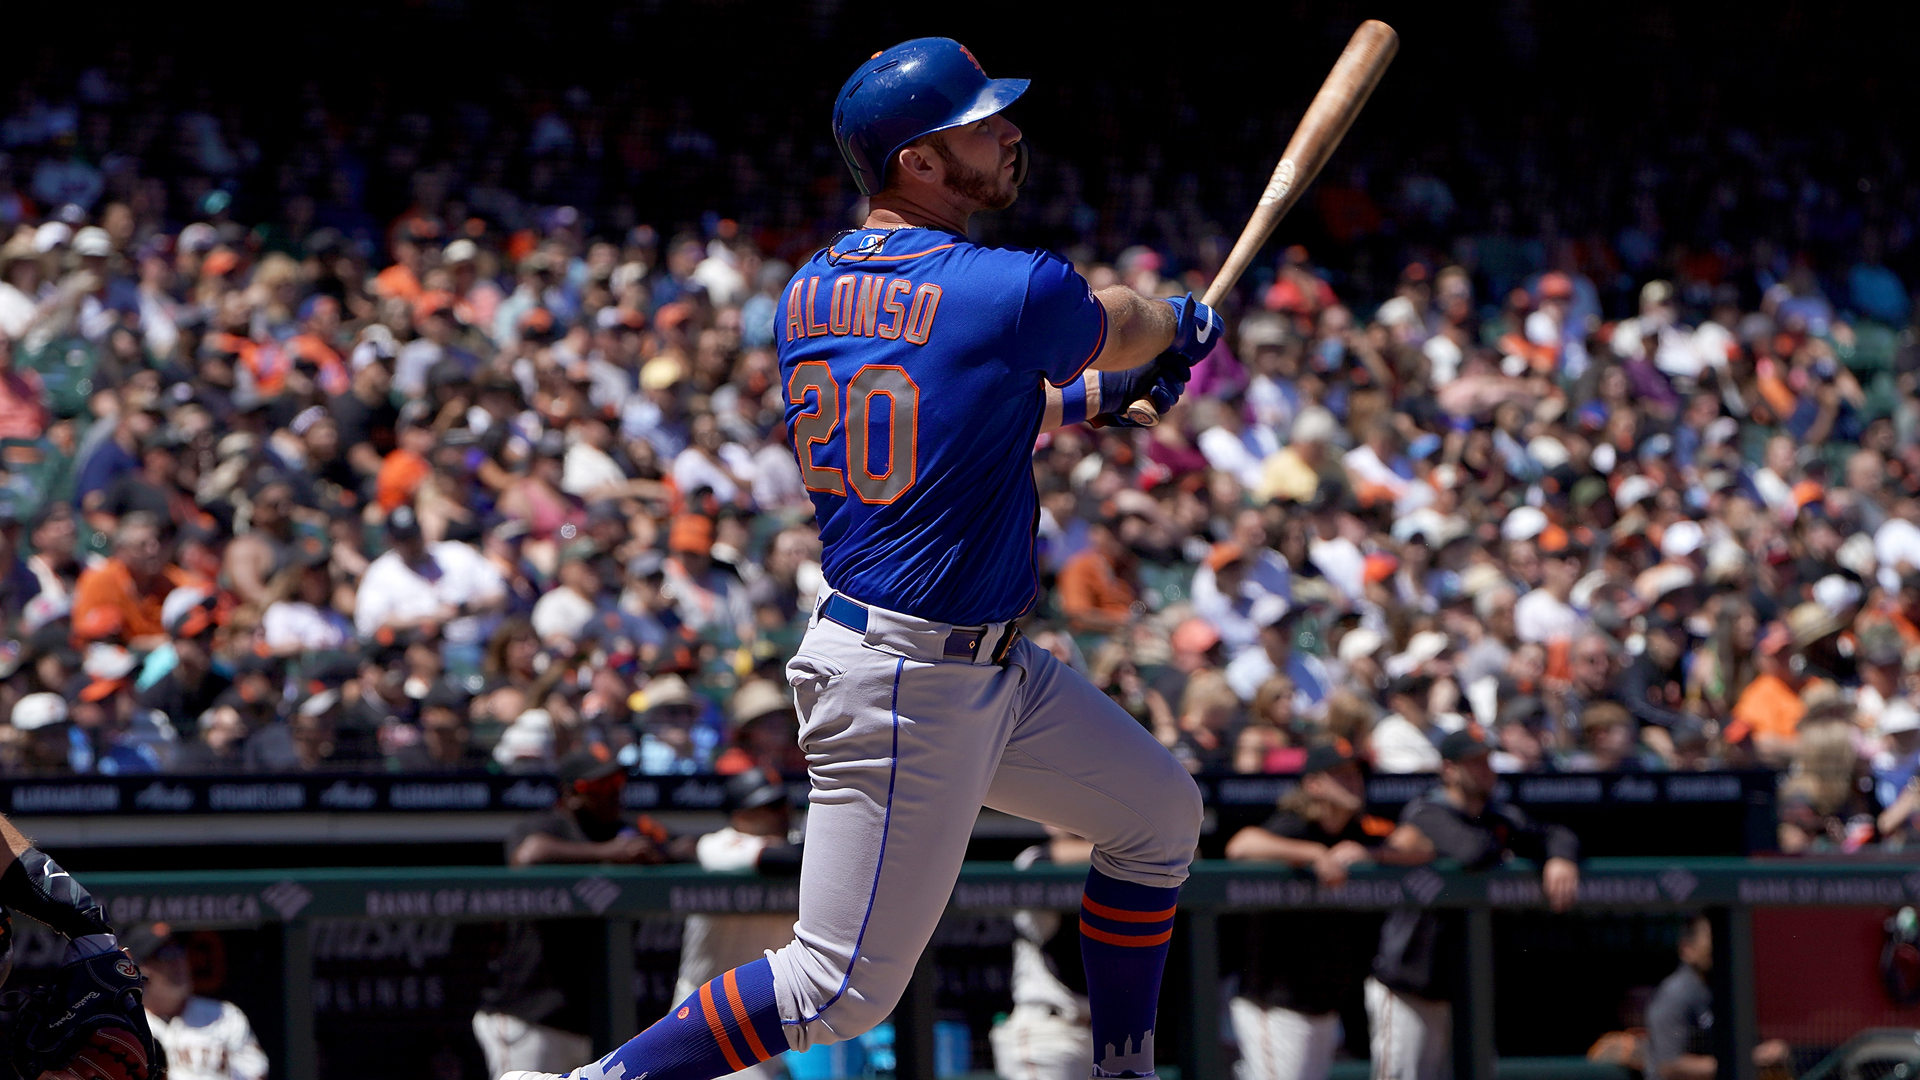 The Mets lost to the Giants in dramatic fashion on Friday but came back to claim a huge win on Saturday at Oracle Park.